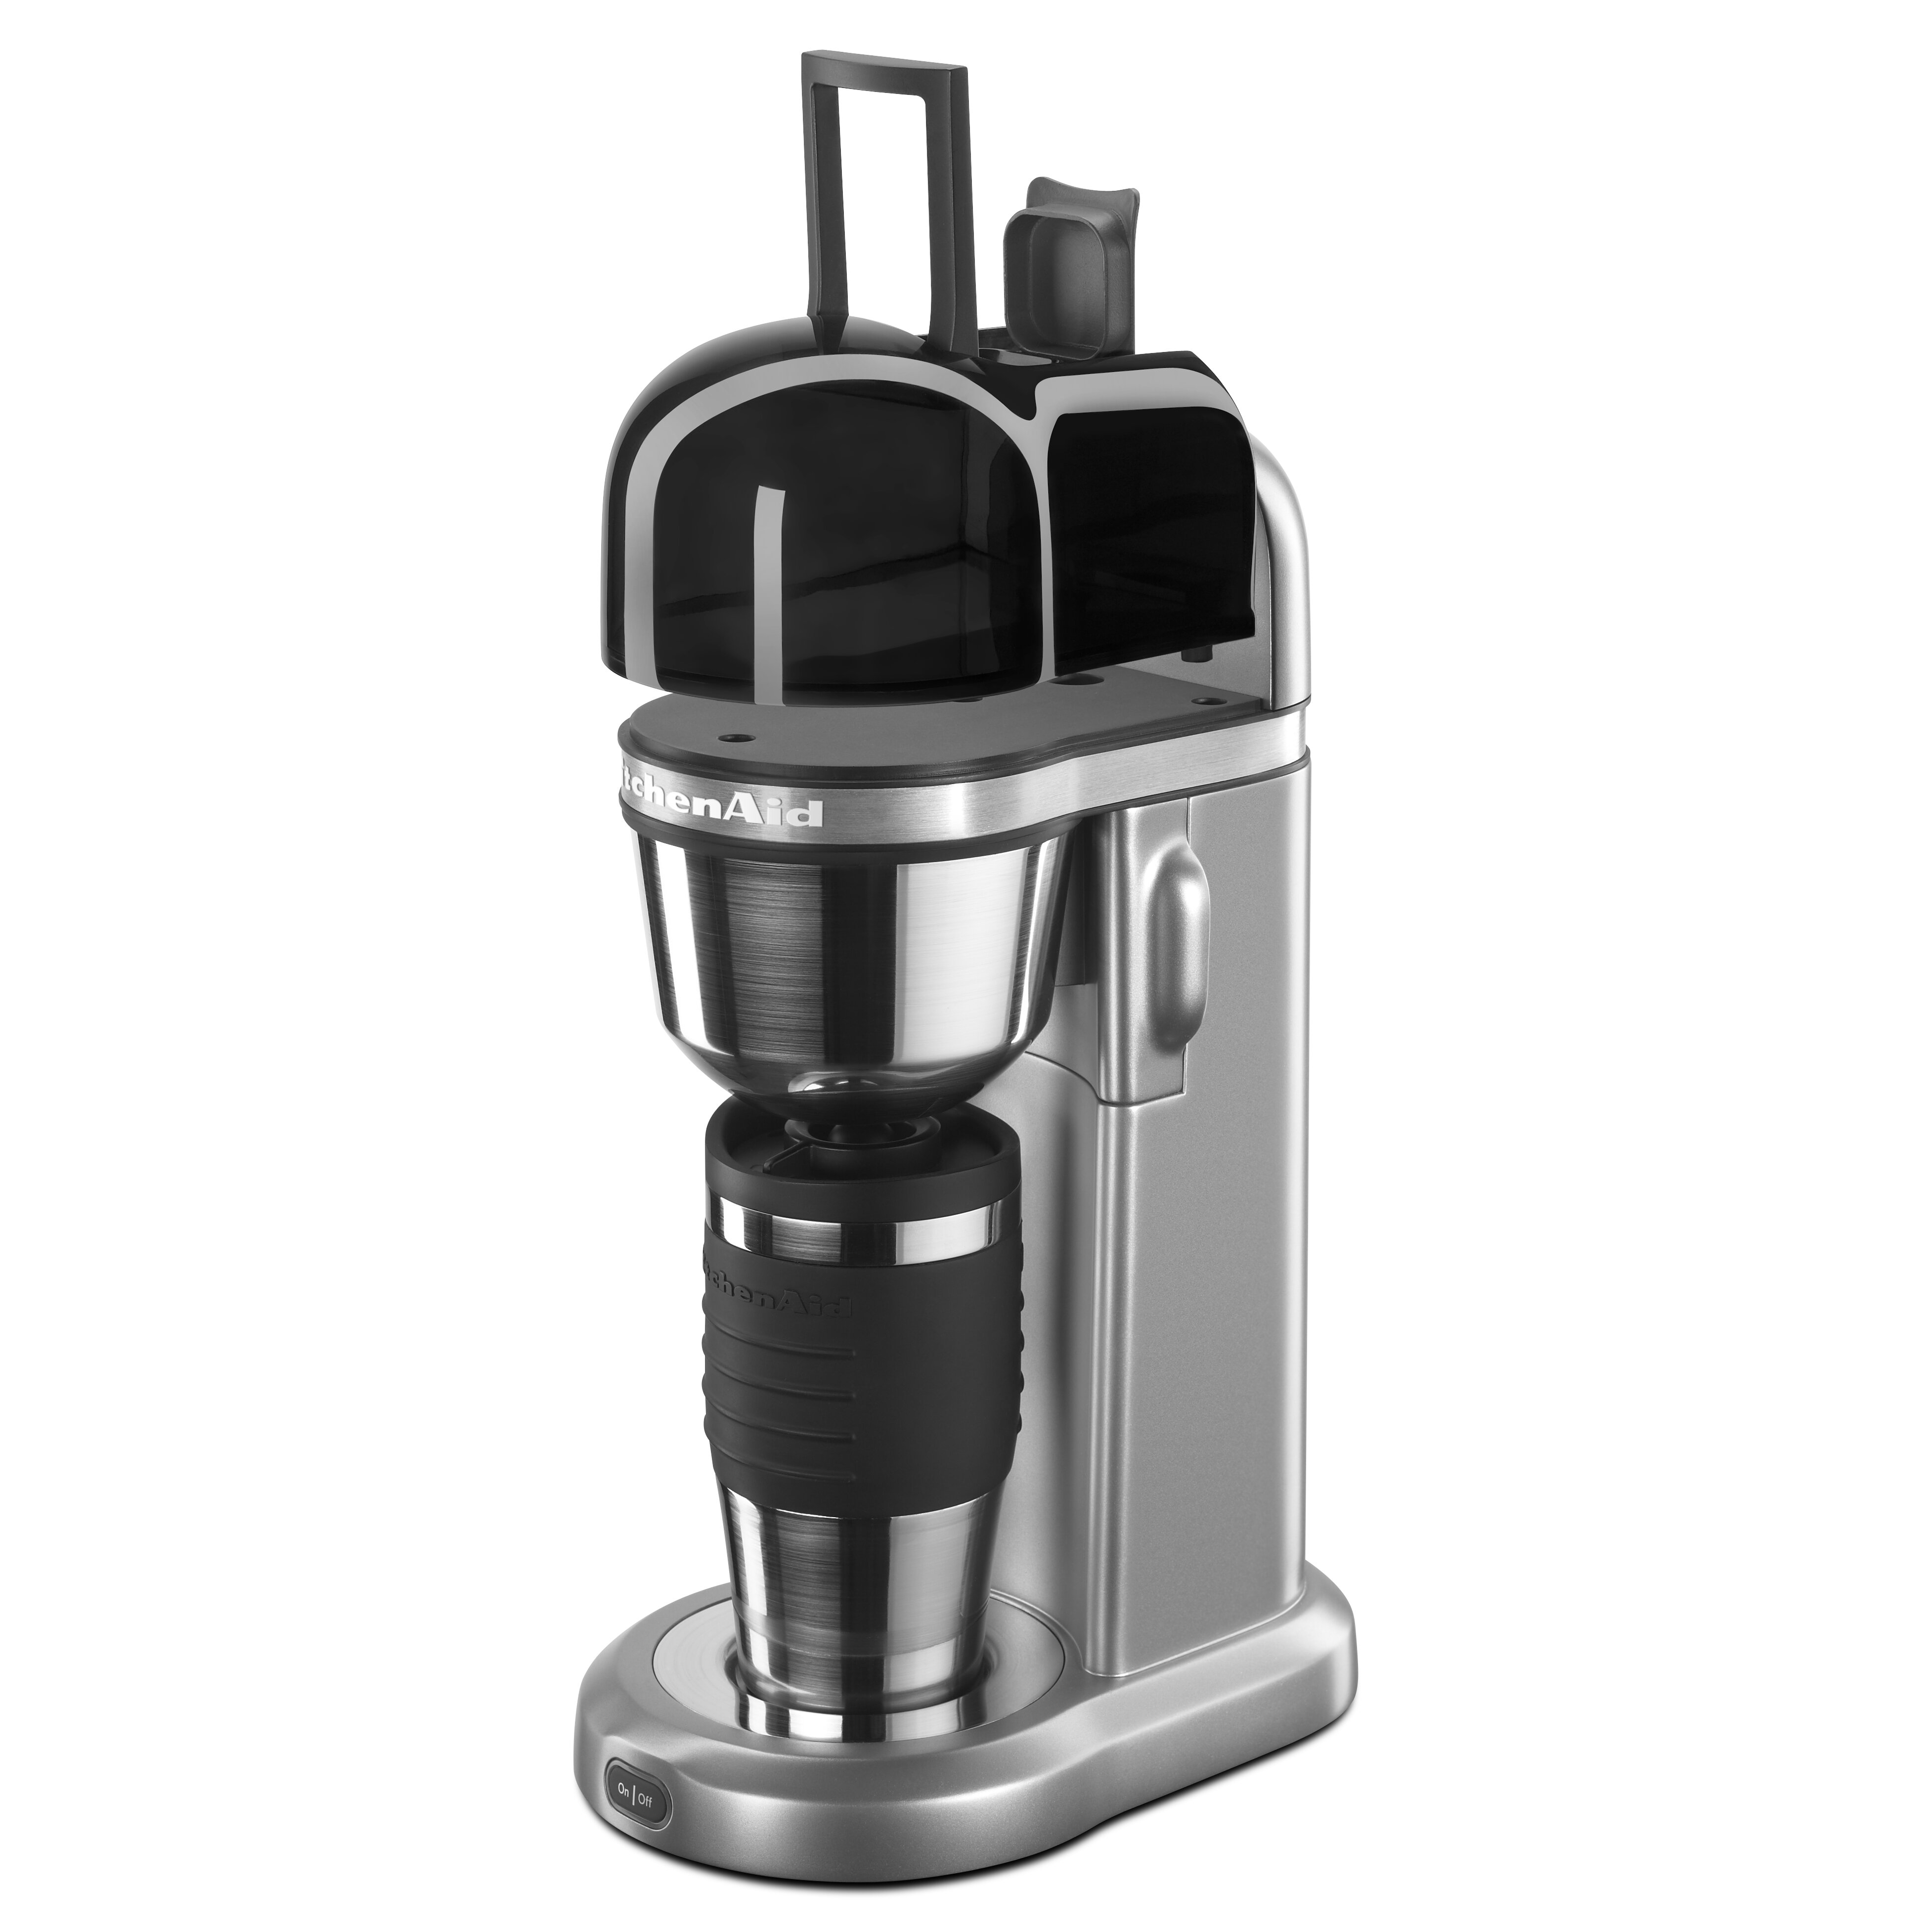 Personal Coffee Maker For Office : KitchenAid Personal 4 Cup Coffee Maker & Reviews Wayfair